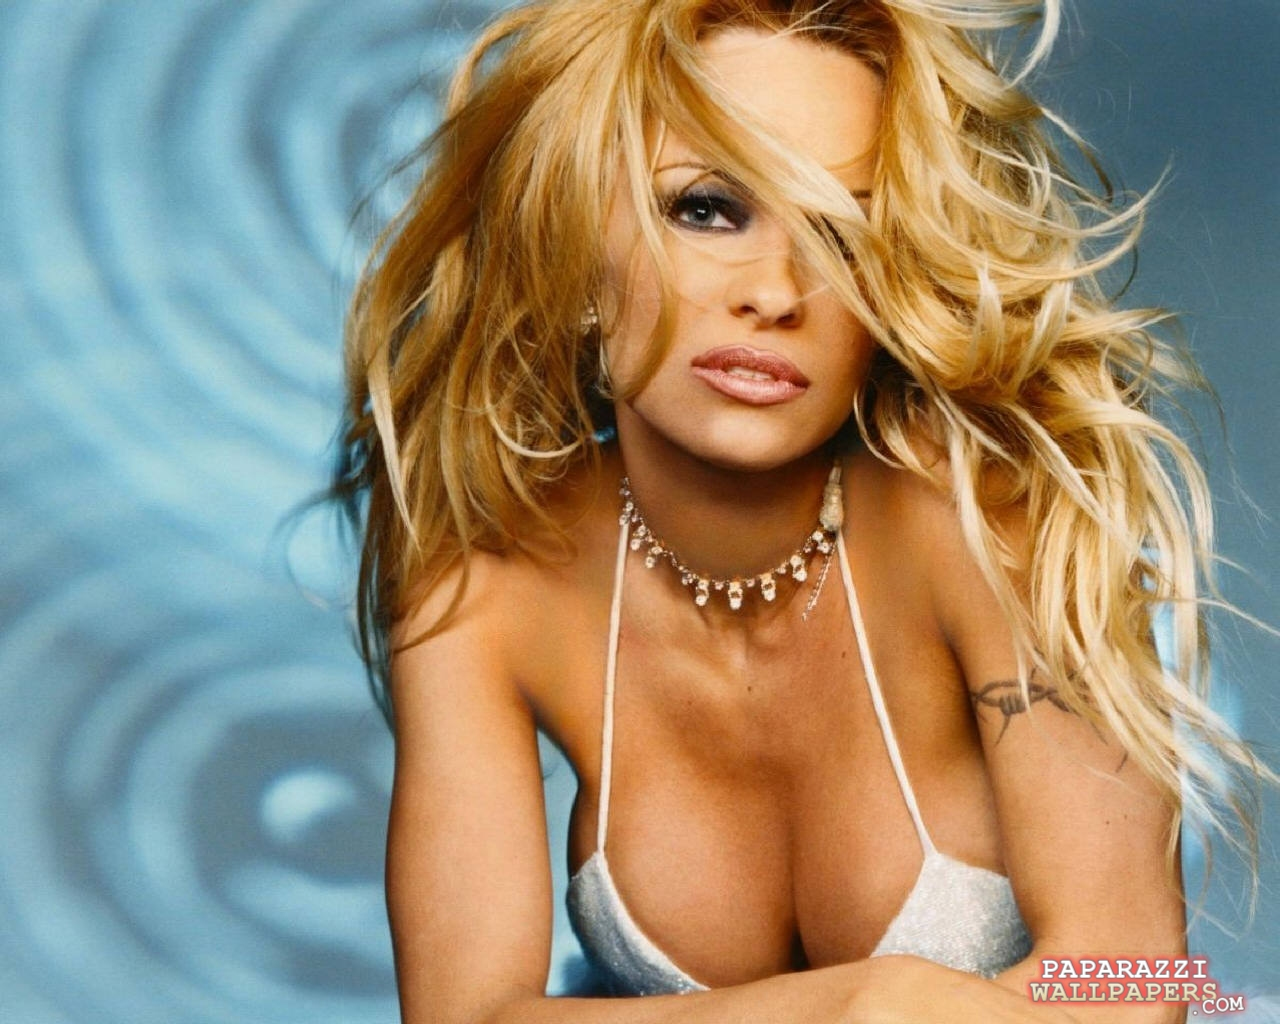 pamela anderson wallpapers 066